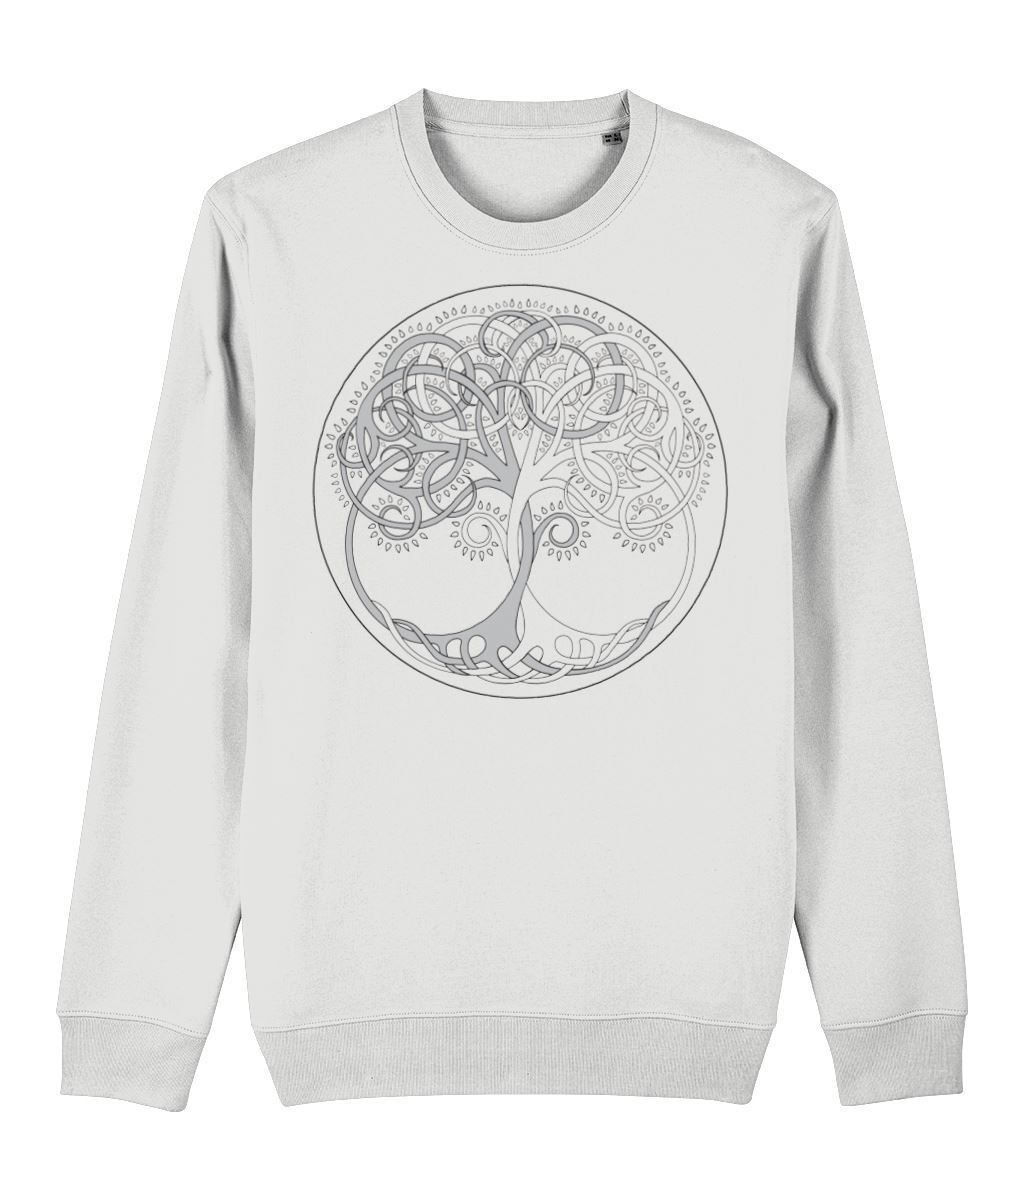 Tree of Life Sweatshirt Clothing IndianBelieves White X-Small